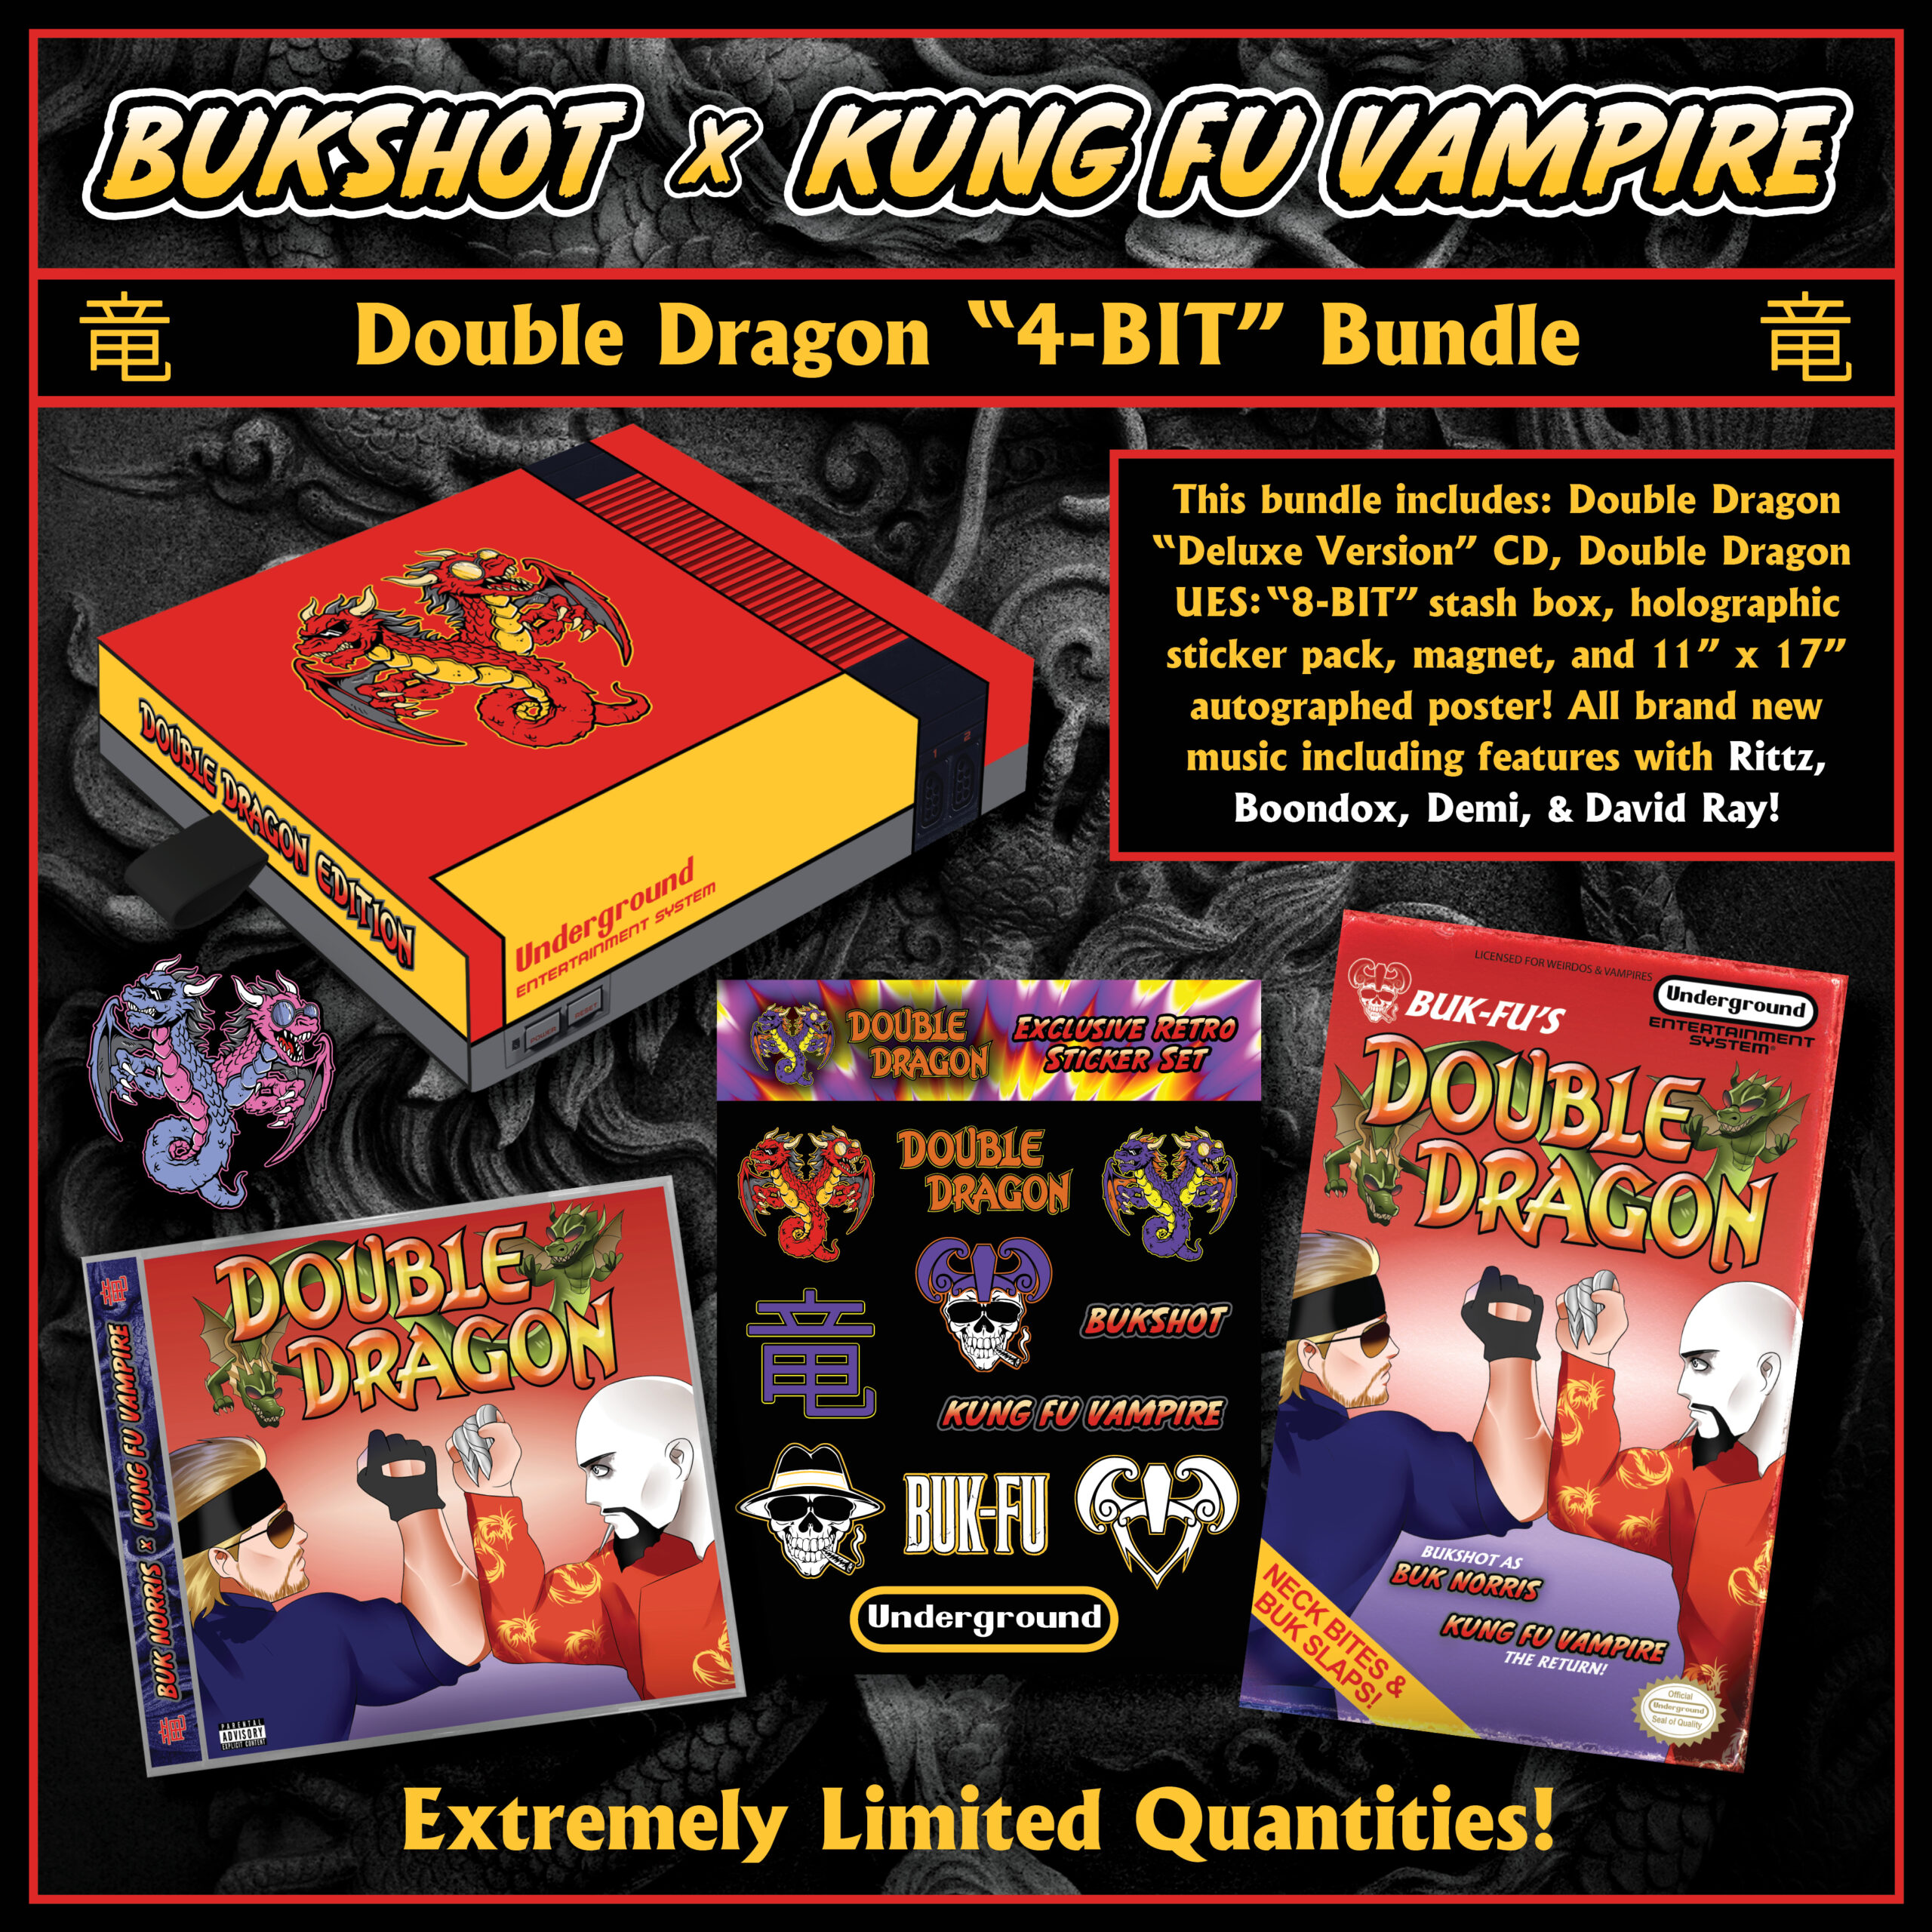 "Bukshot & Kung Fu Vampire ""Double Dragon"" 4-BIT Partial Box Set (PLEASE READ! Complete 8-Bit Box Sets Are SOLD OUT!"